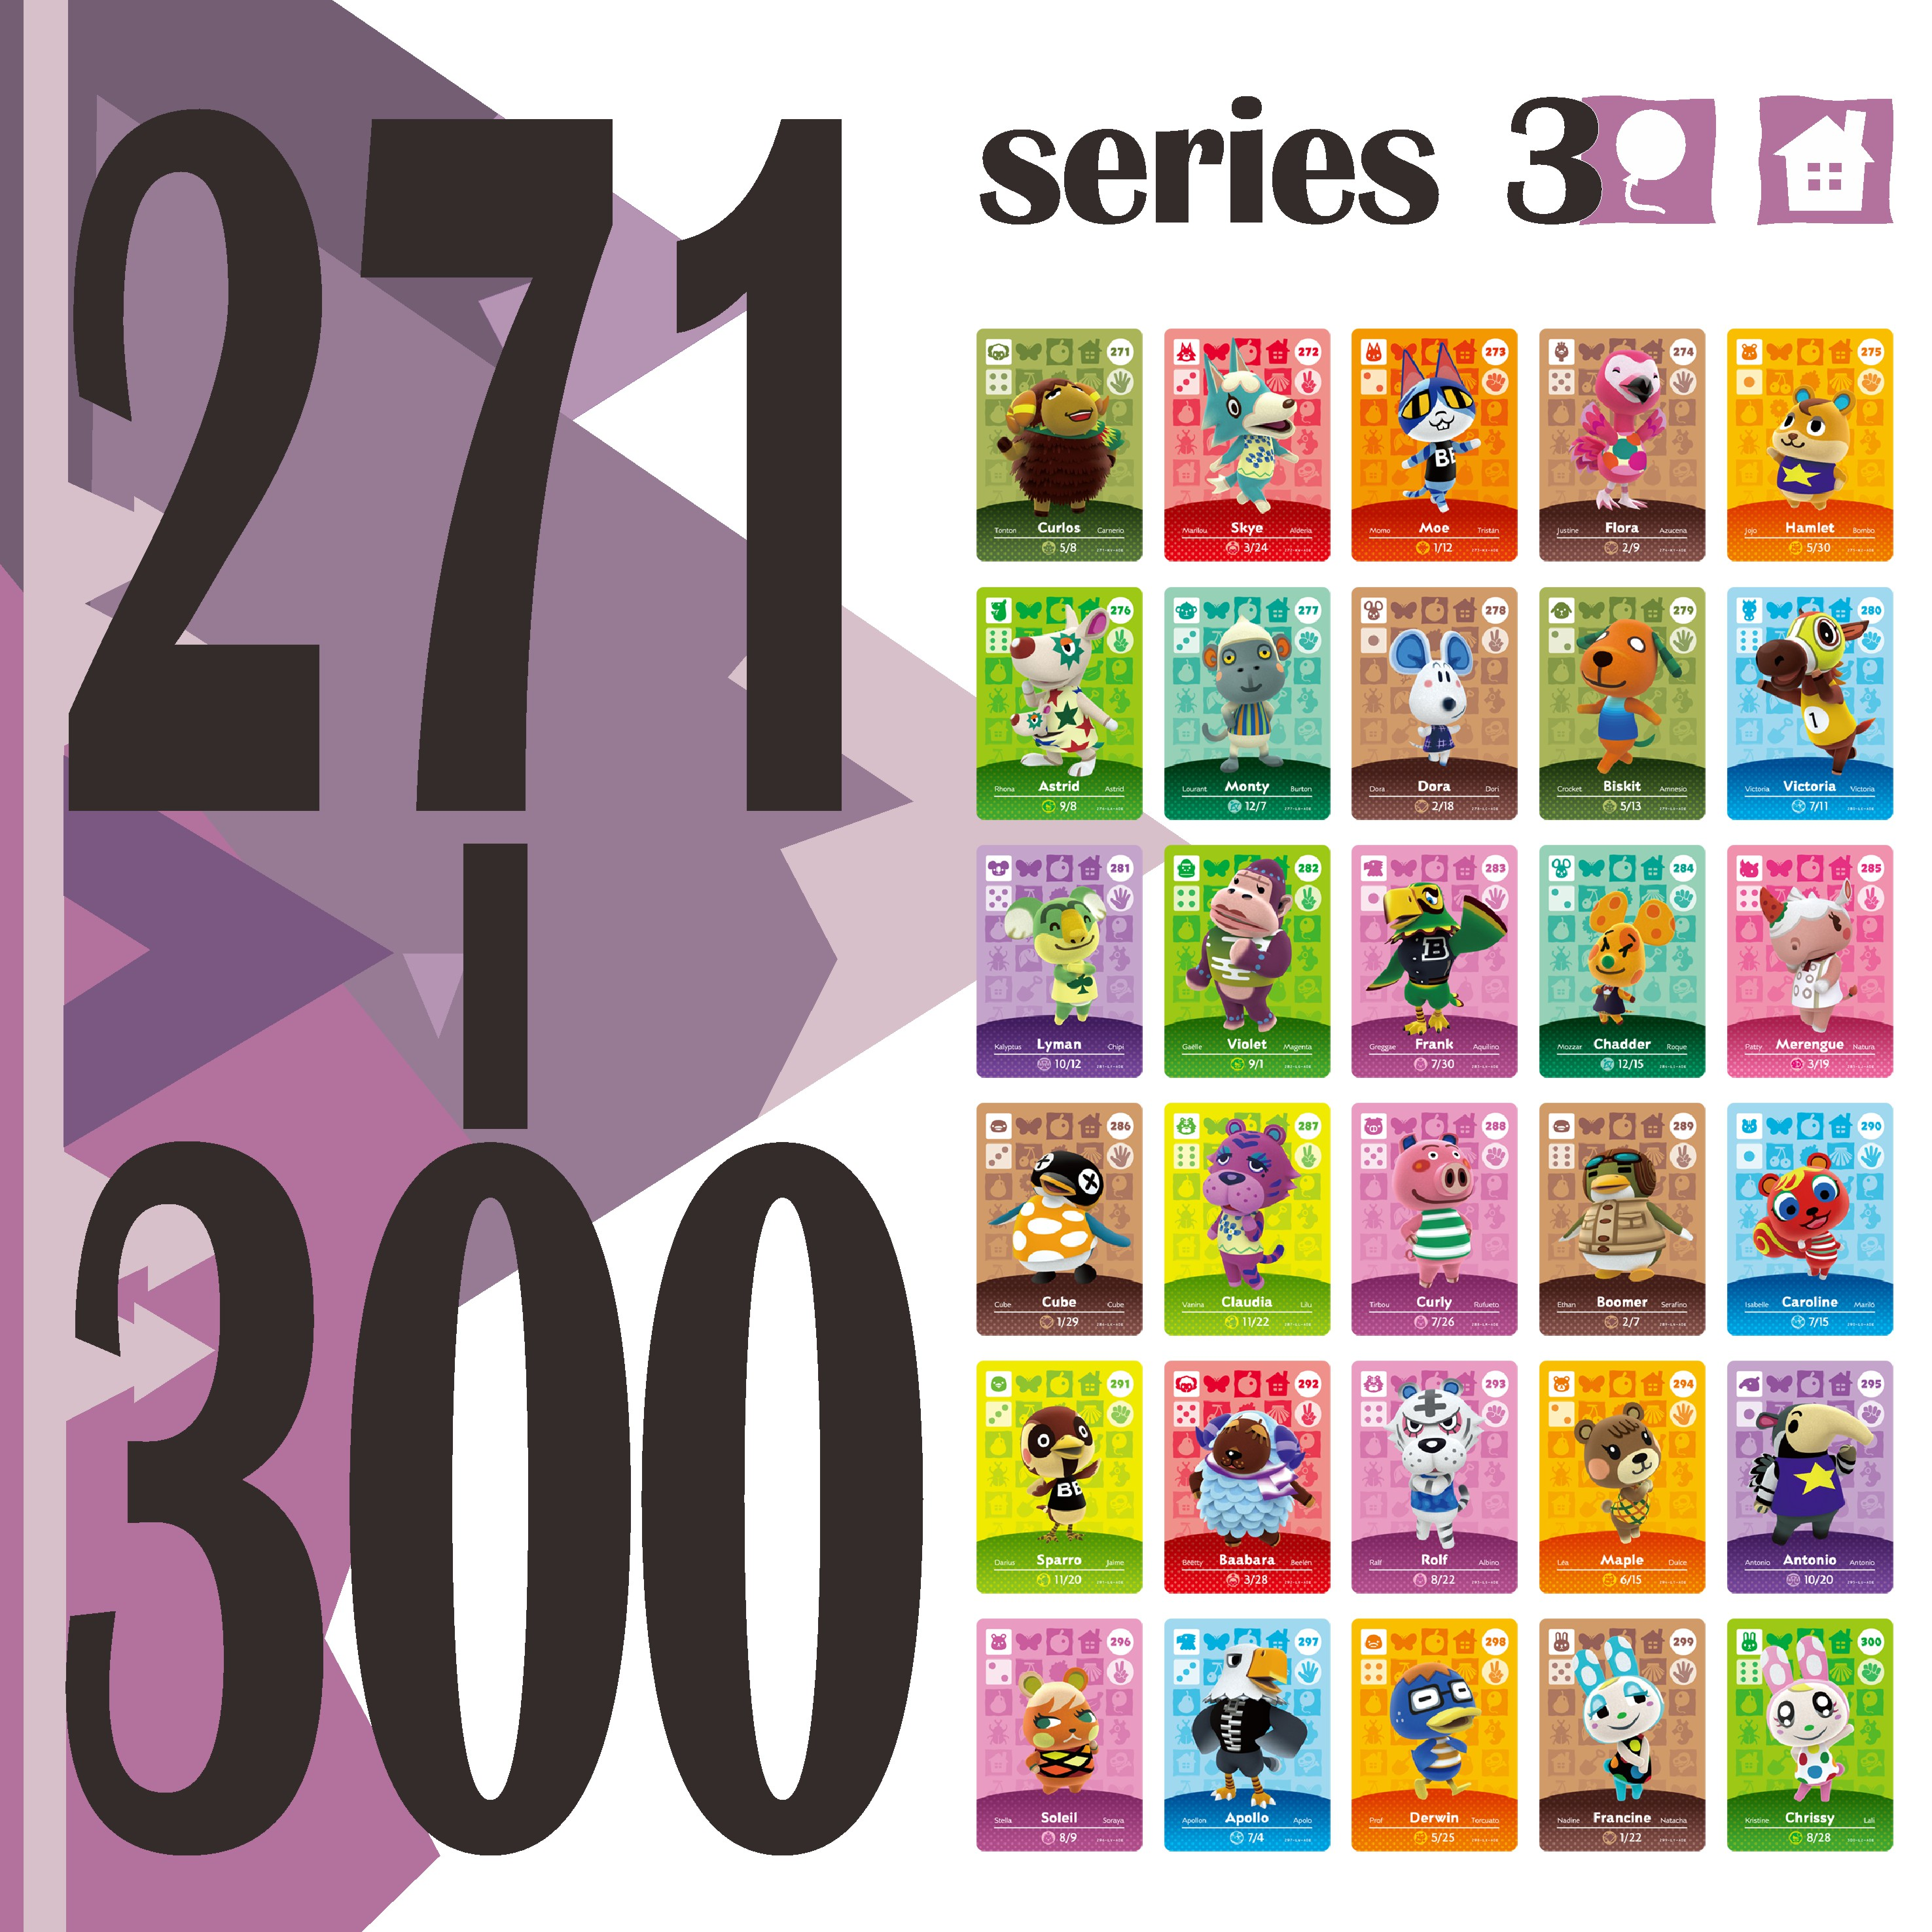 Animal Crossing Stickers Card Amiibo Card Work for NS Games Series 3 happy home designer guide switch rosie rv (271 to 300) 1